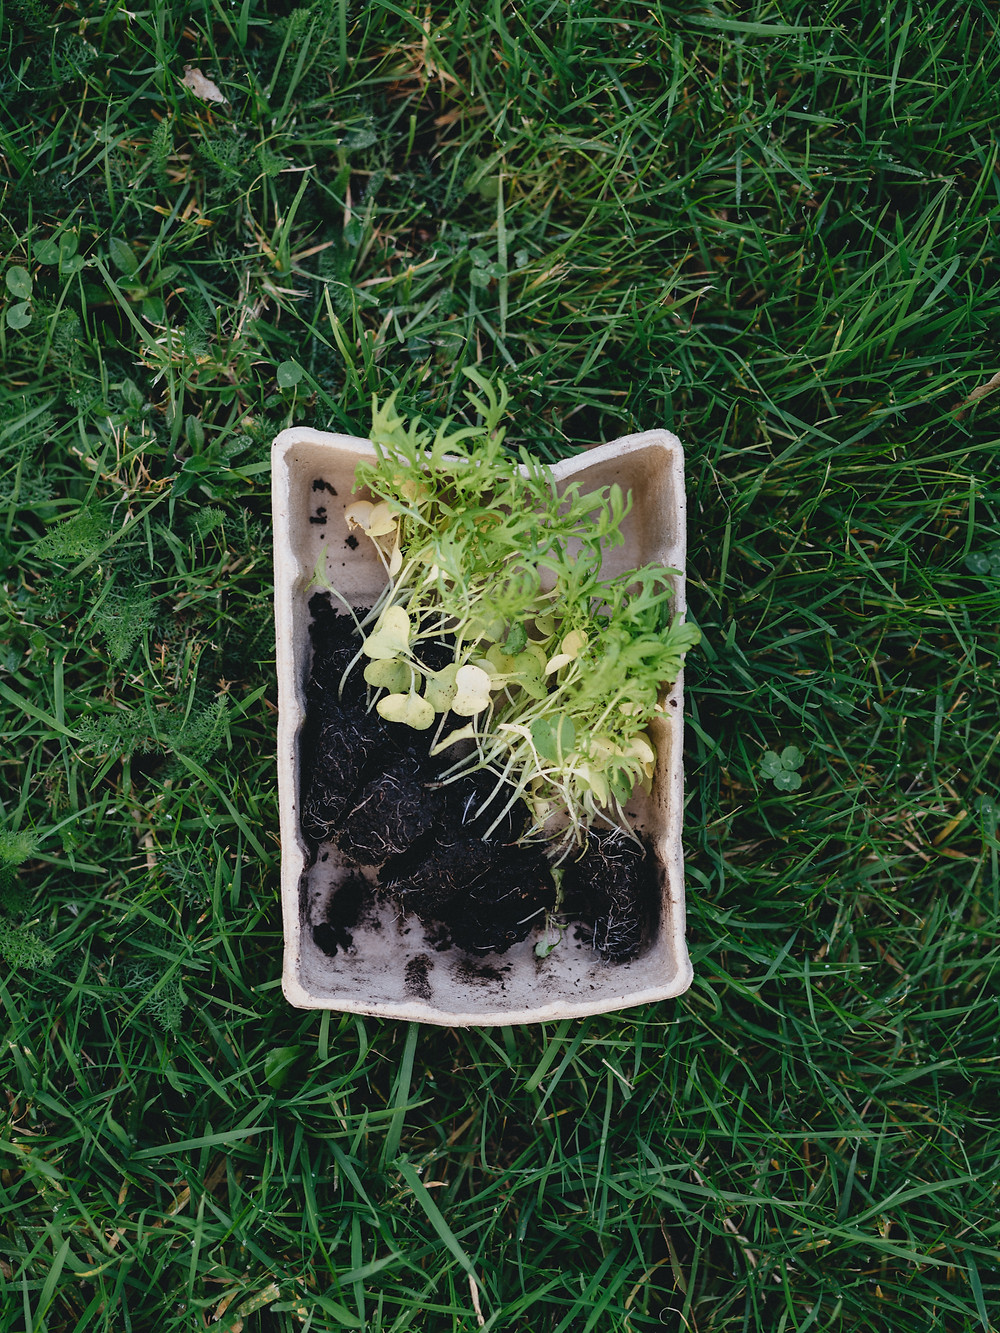 A compostable container takes a long time to degrade in nature